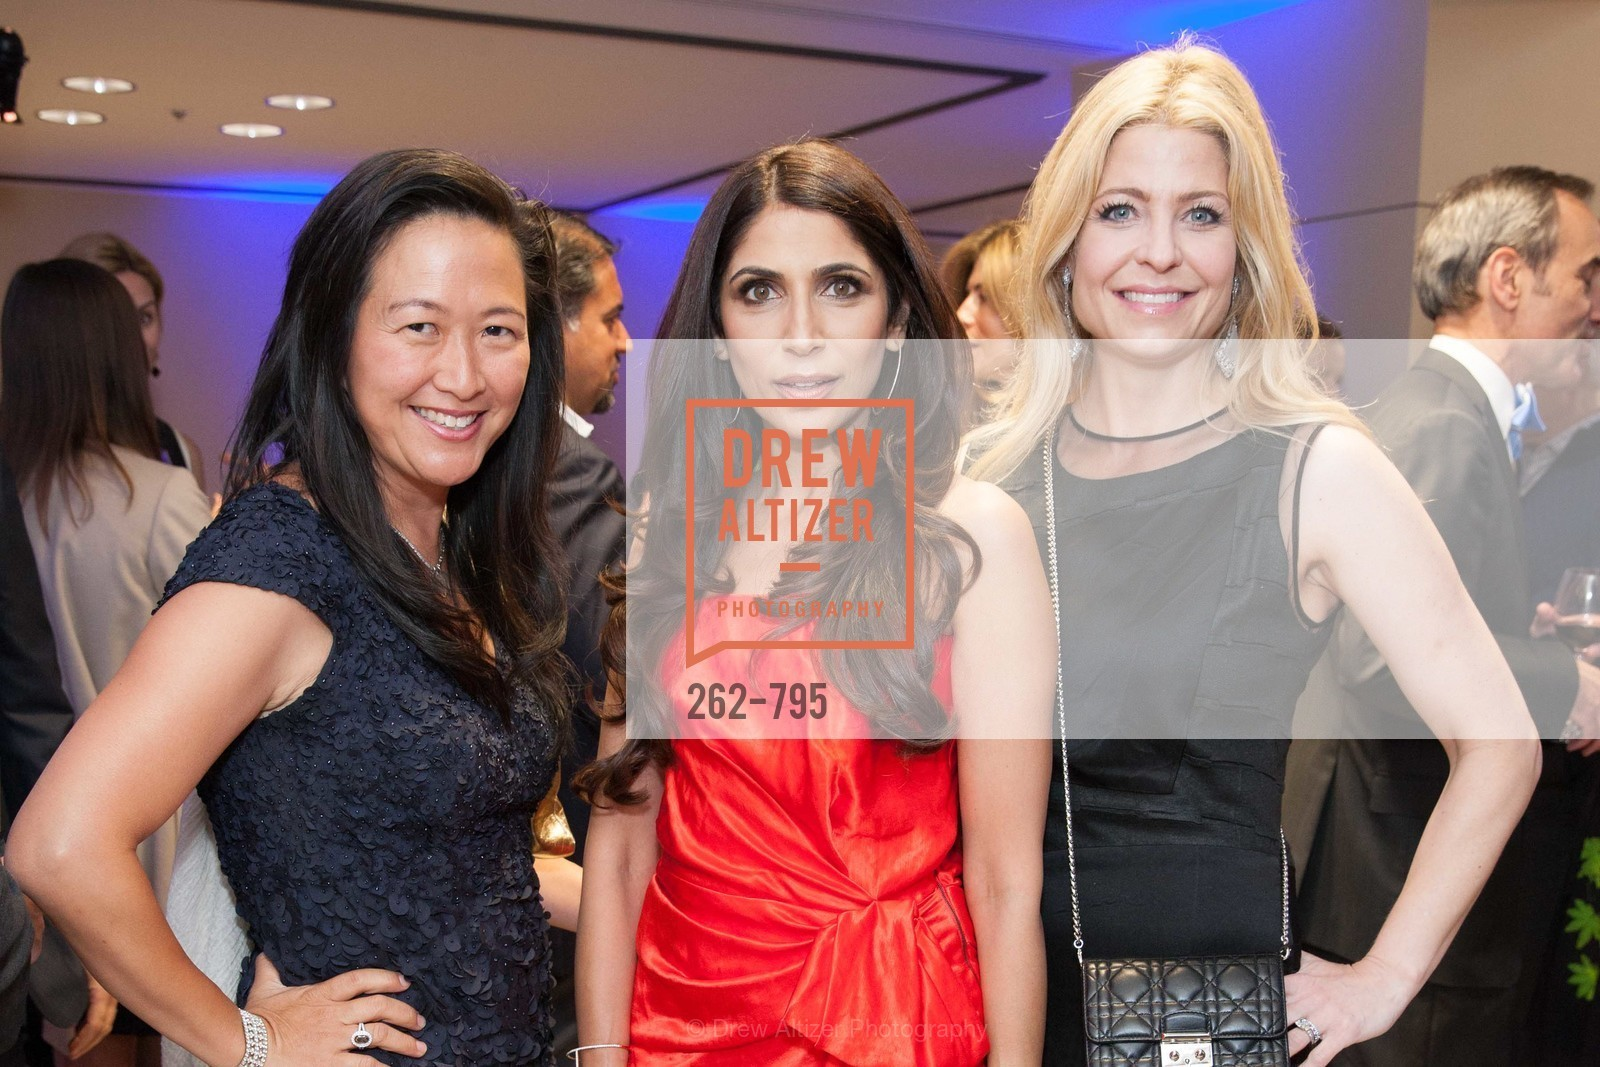 Angela Cheung, Sobia Shaikh, Jenna Hunt, COMPASS FAMILY SERVICES Annual Spring Benefit:  Every Family Needs A Home, US, April 23rd, 2015,Drew Altizer, Drew Altizer Photography, full-service agency, private events, San Francisco photographer, photographer california